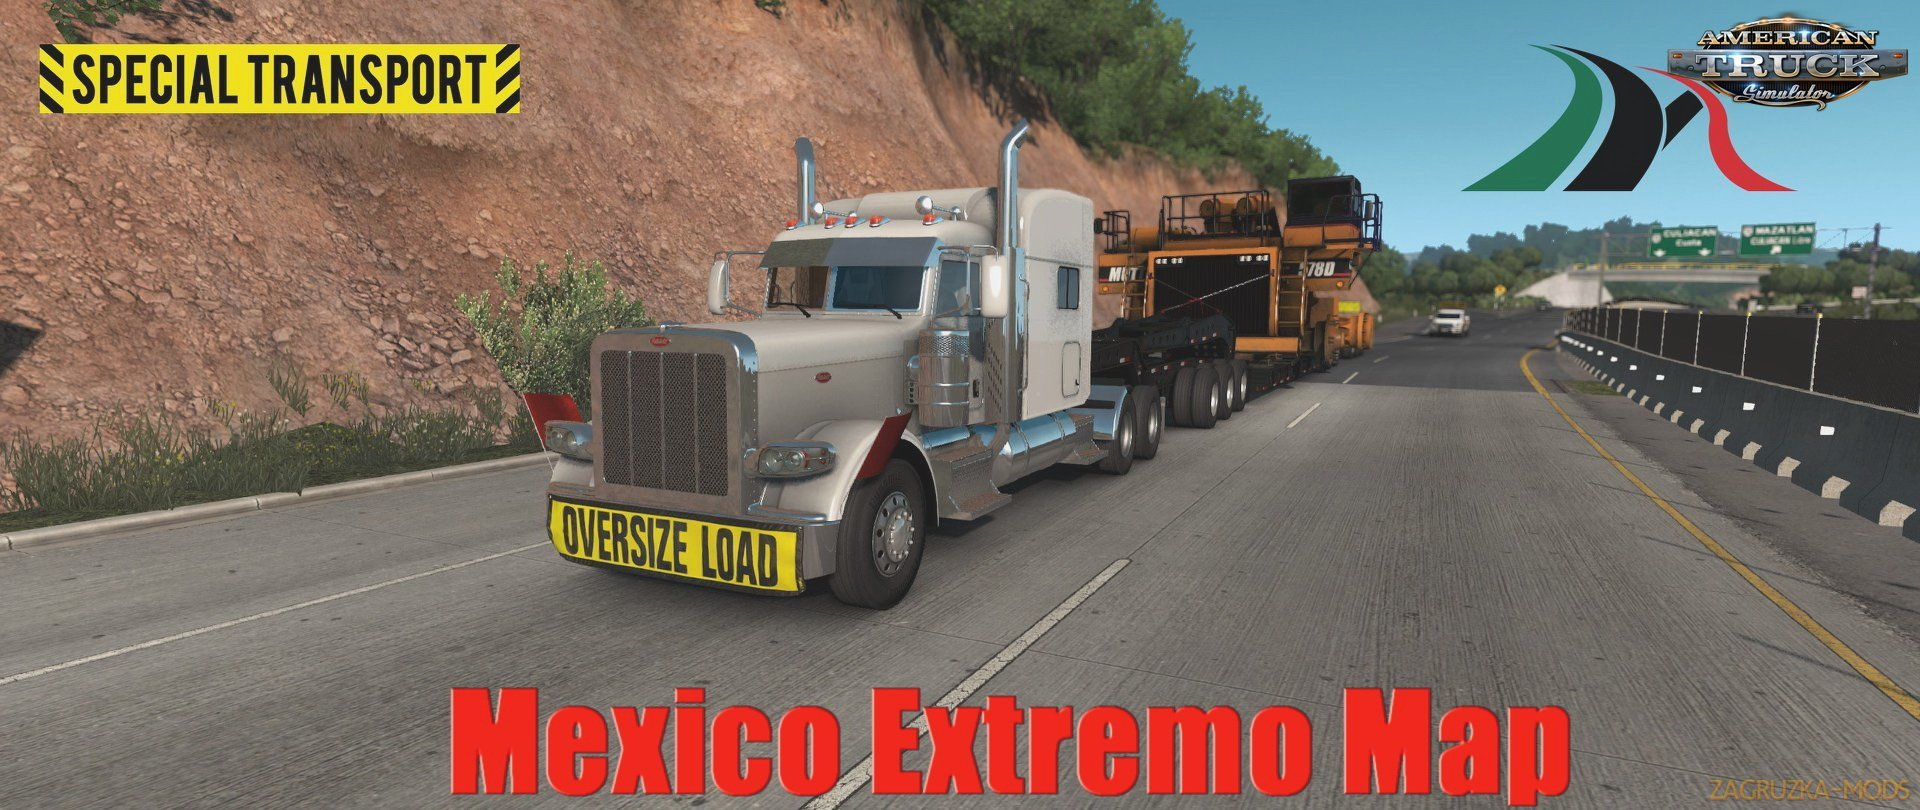 Mexico Extremo Map v2.1.7 (1.34.x) for ATS